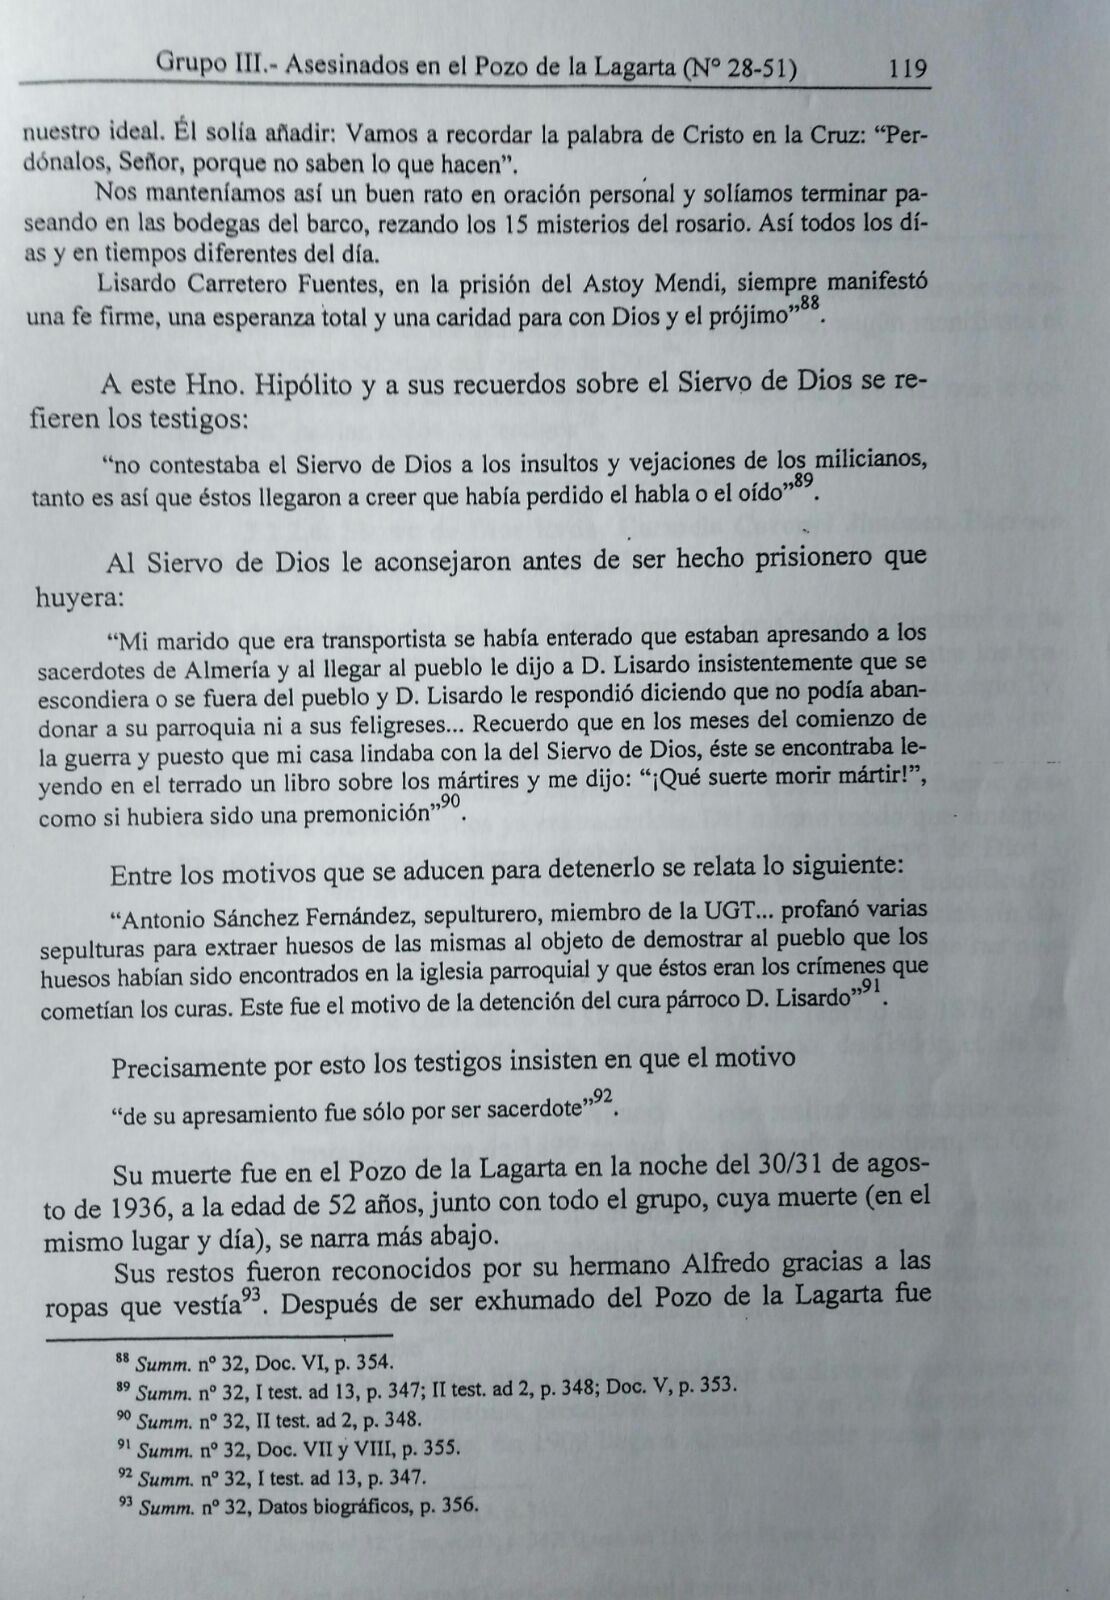 expediente de beatificacion de lisardo carretero